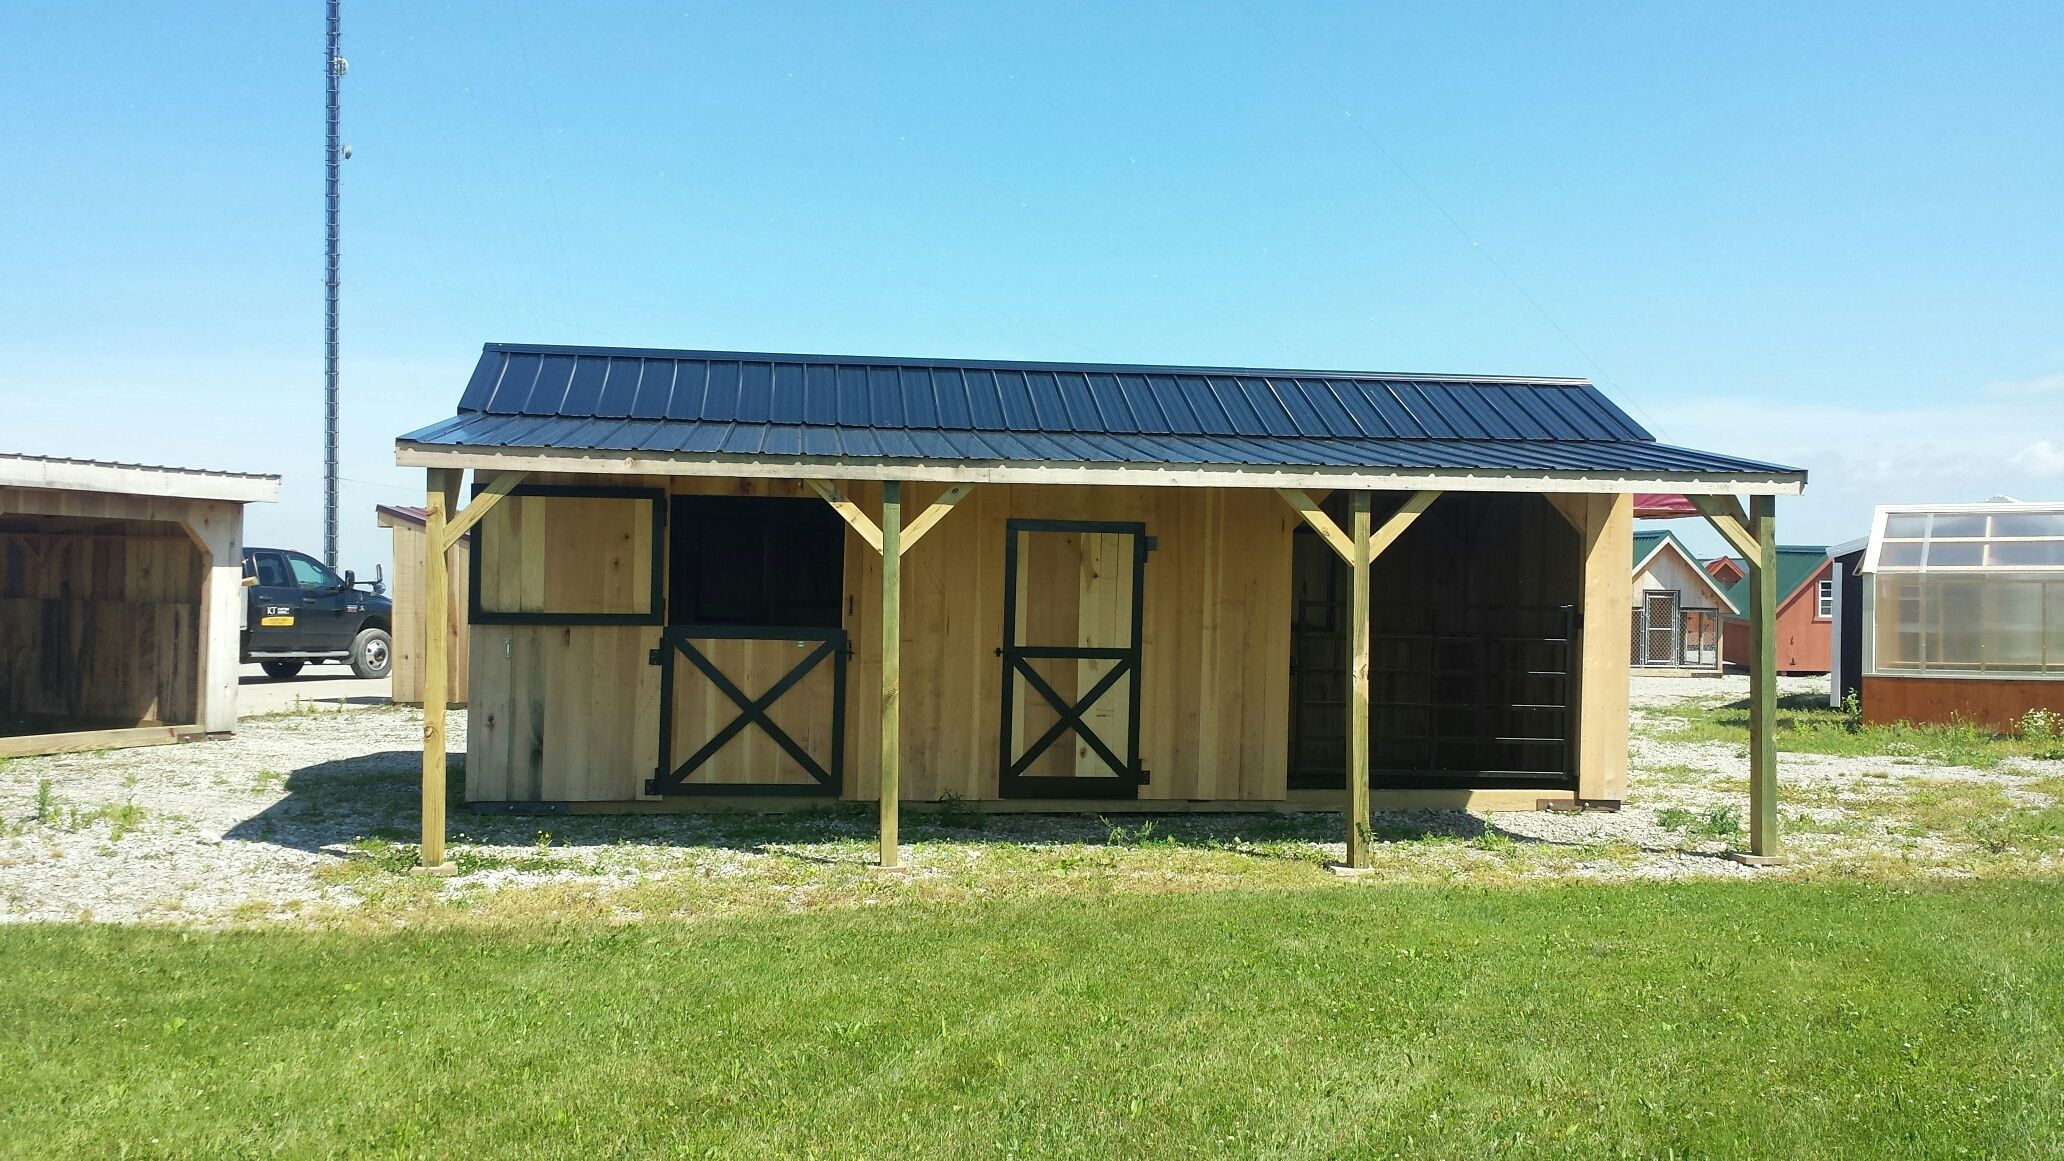 10x26 Portable Horse Barn With 2 Stalls And A Tack Room For Hay And Feed  Storage